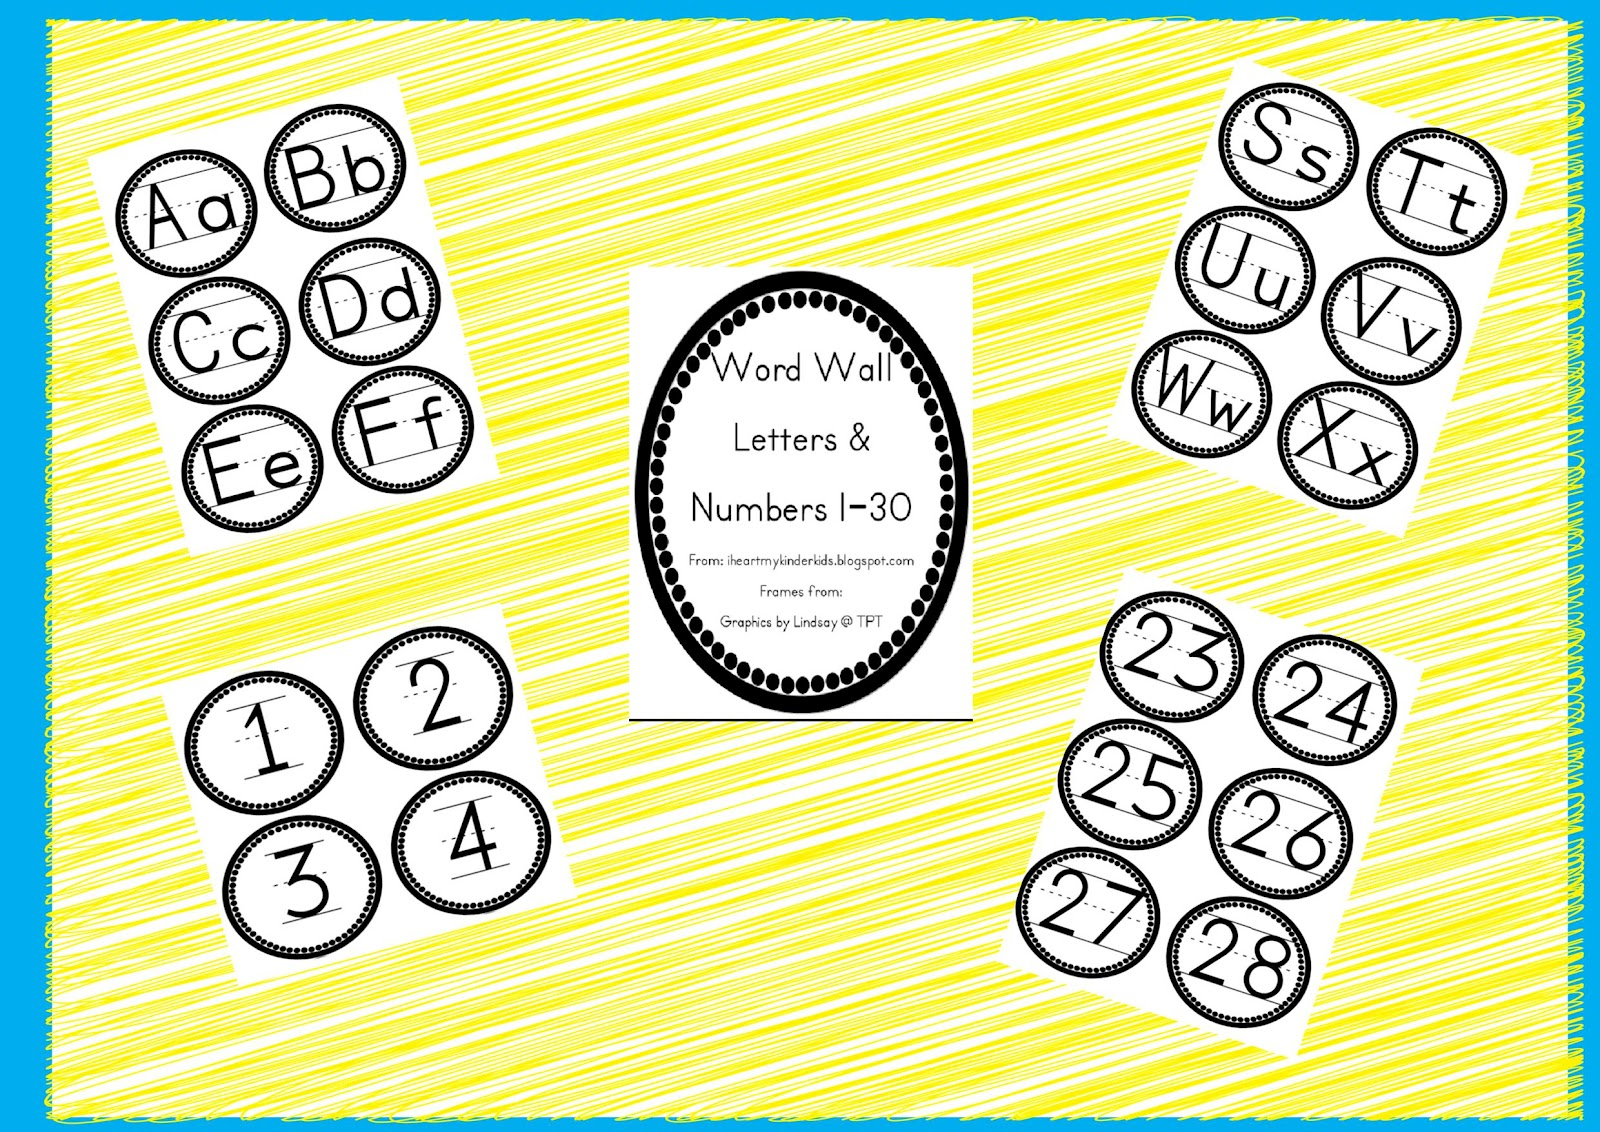 Word Wall Letters Classroom Freebies Too Polka Dot Word Wall Letters And Numbers 130